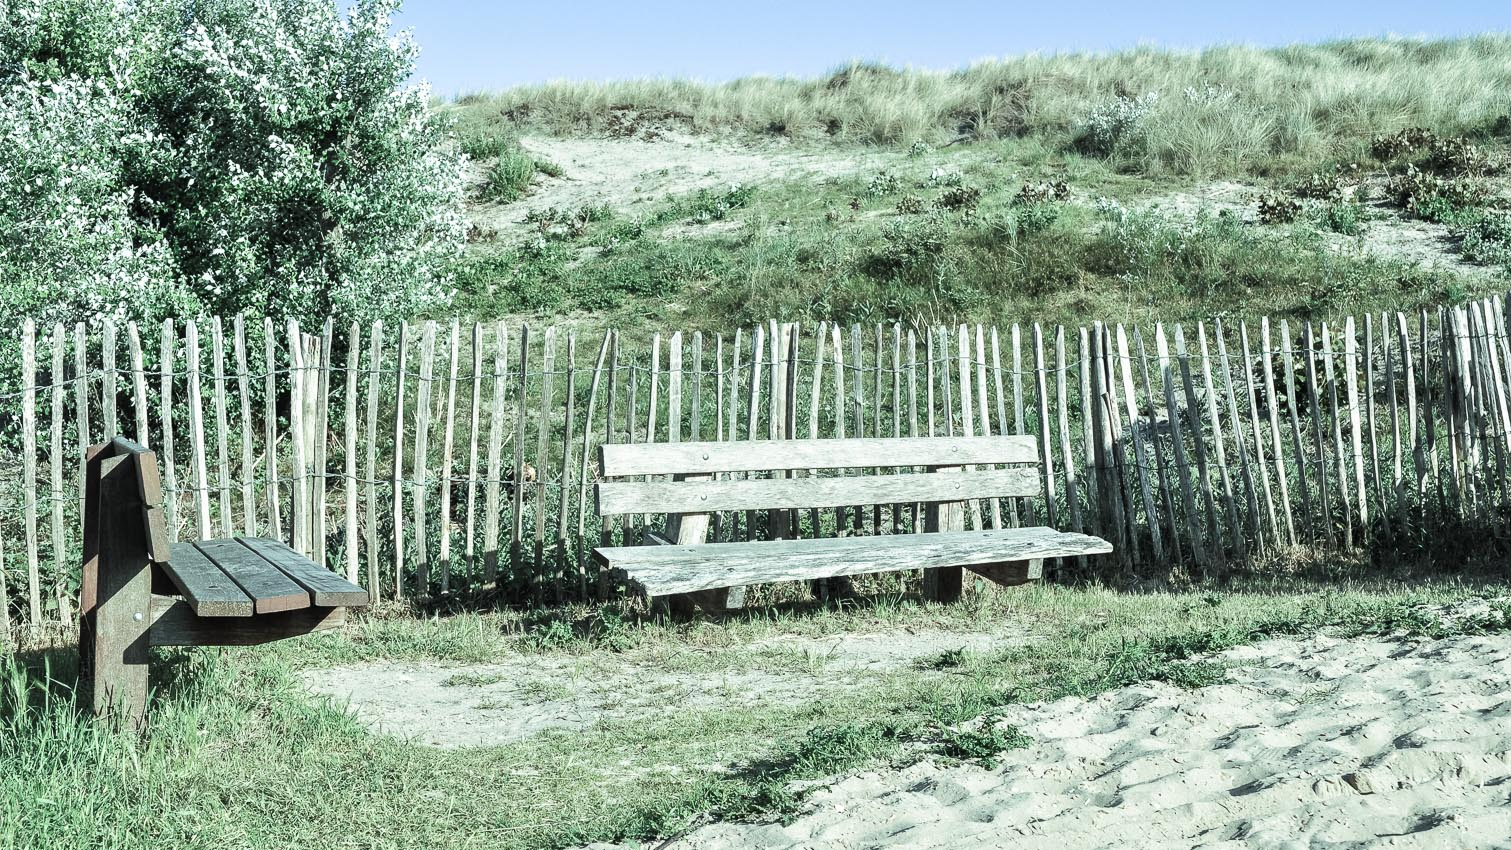 17-mer-plage-dune-location-decors-film-cinema-photo-belgium-bruxelles